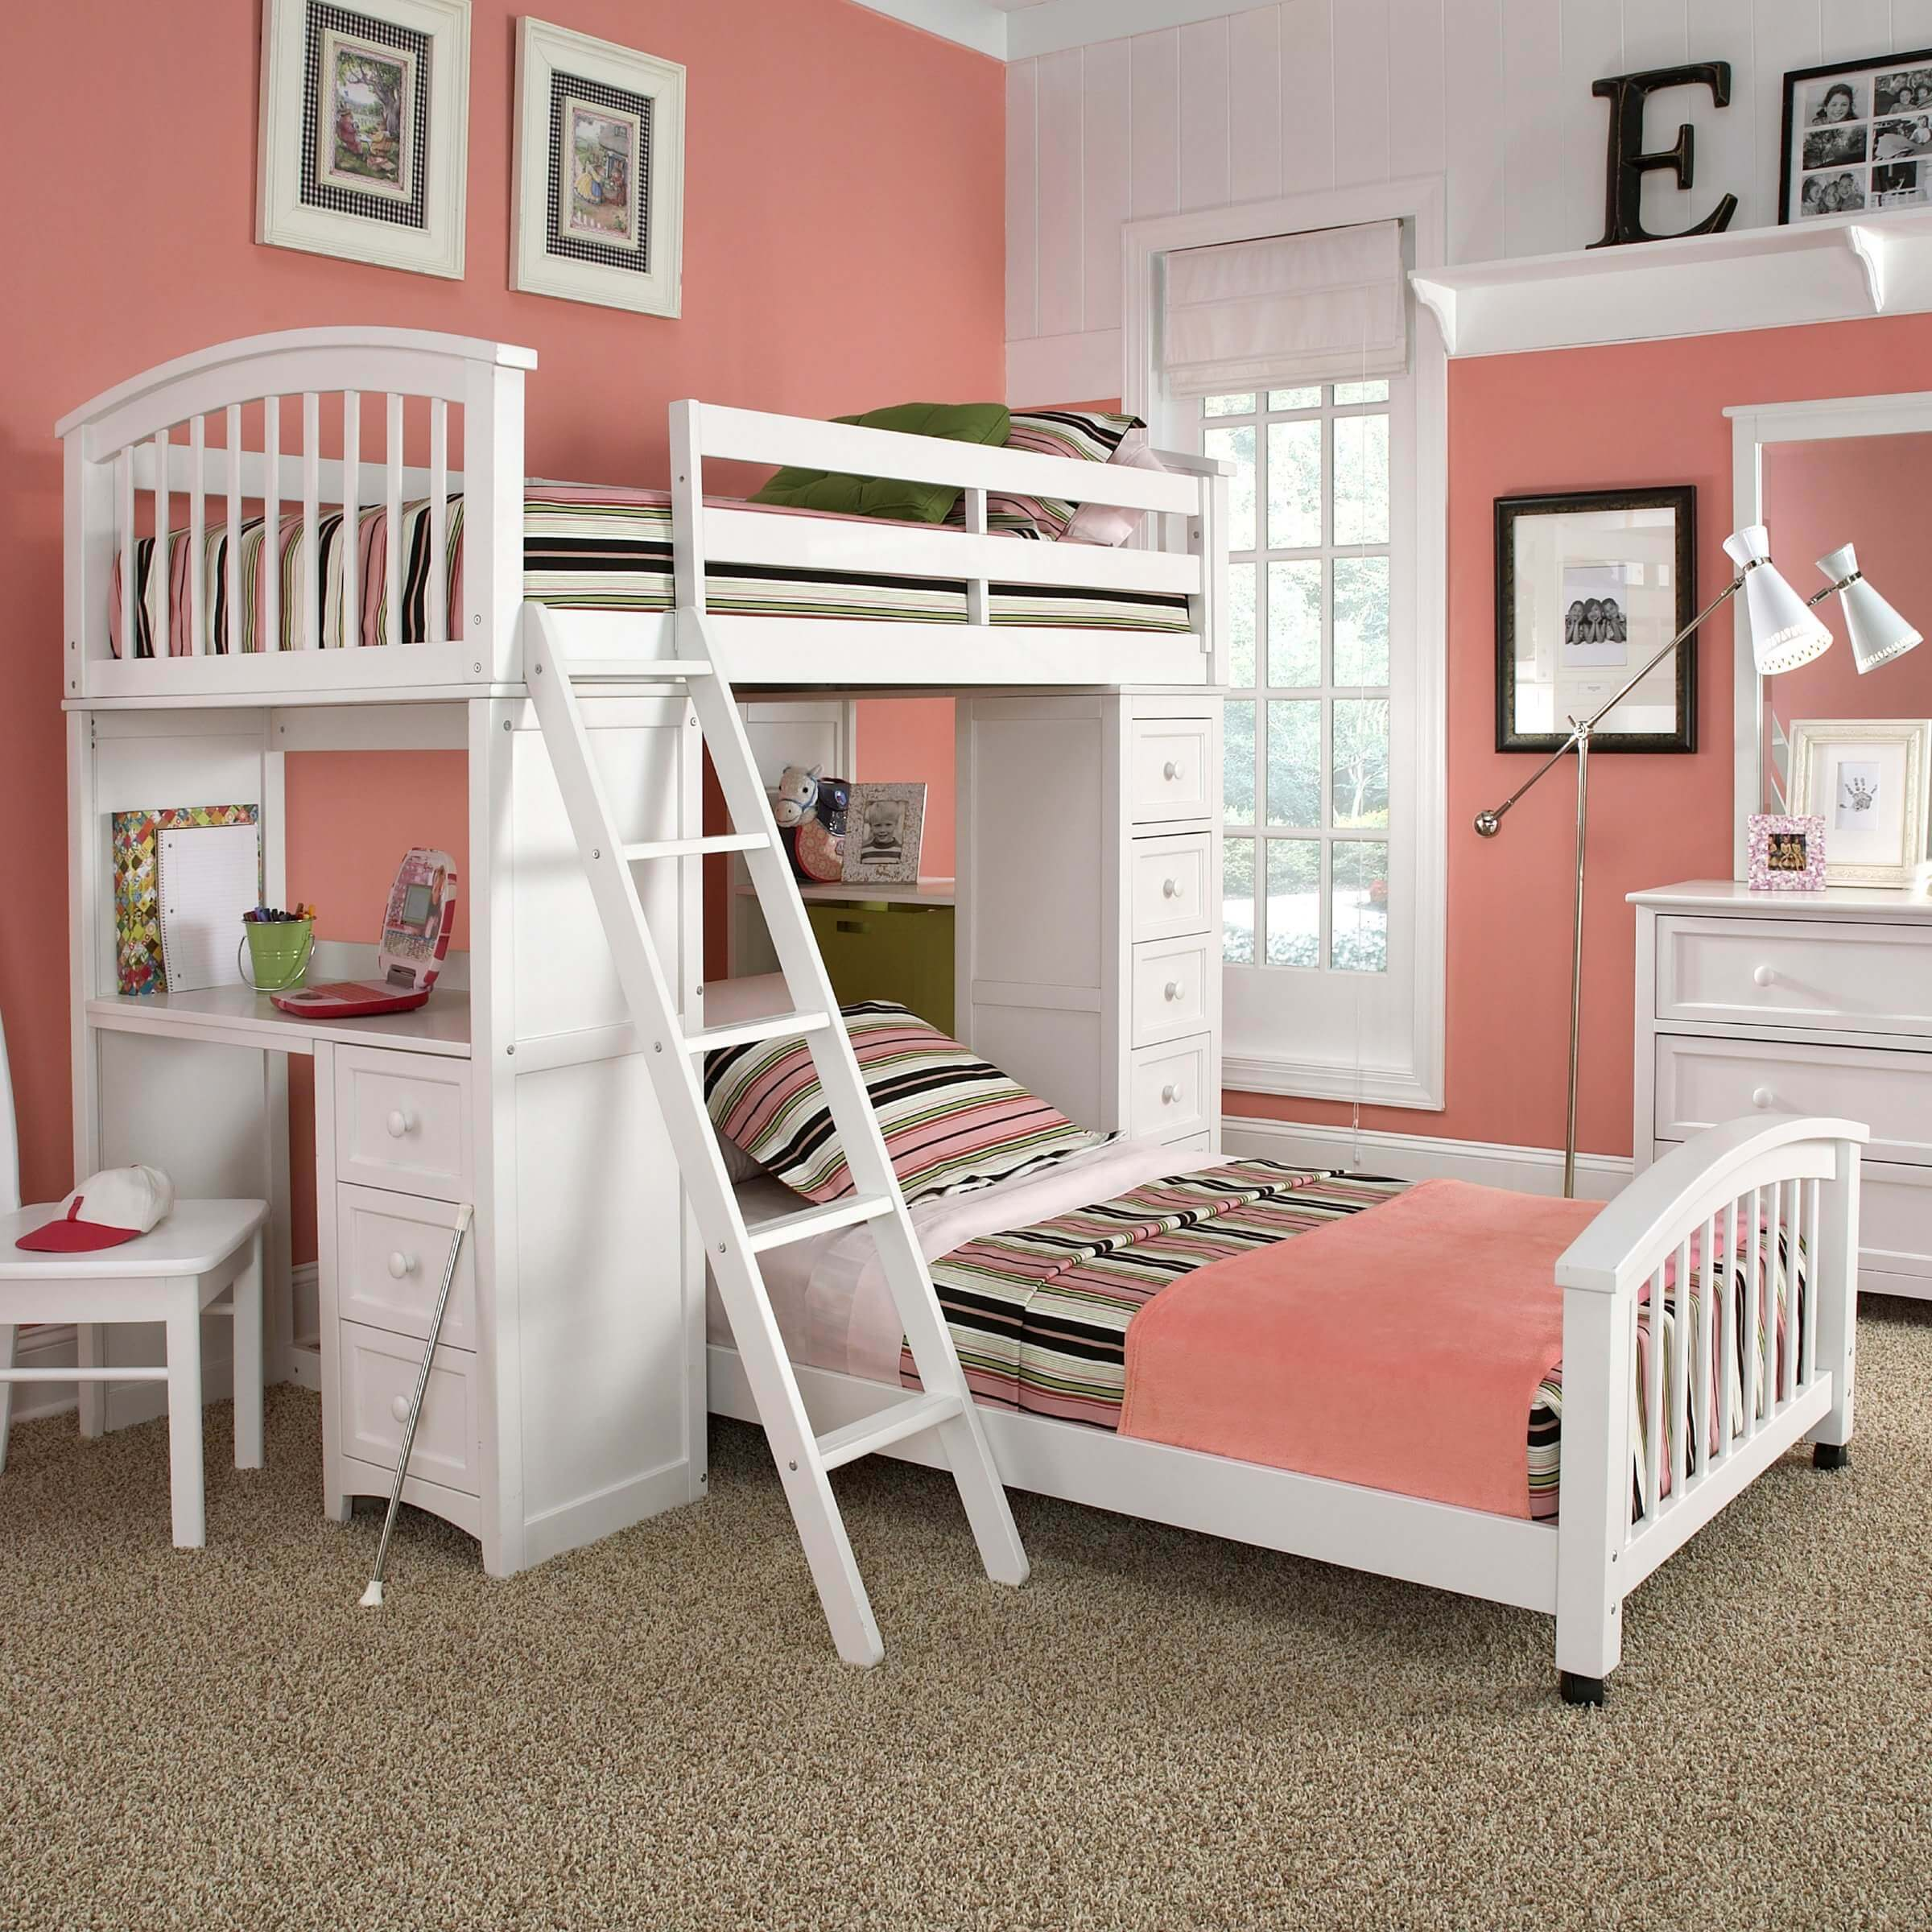 Pink And Grey Bedroom Decor White Girls Furniture Fresh Bedroom Interior Design Decoration